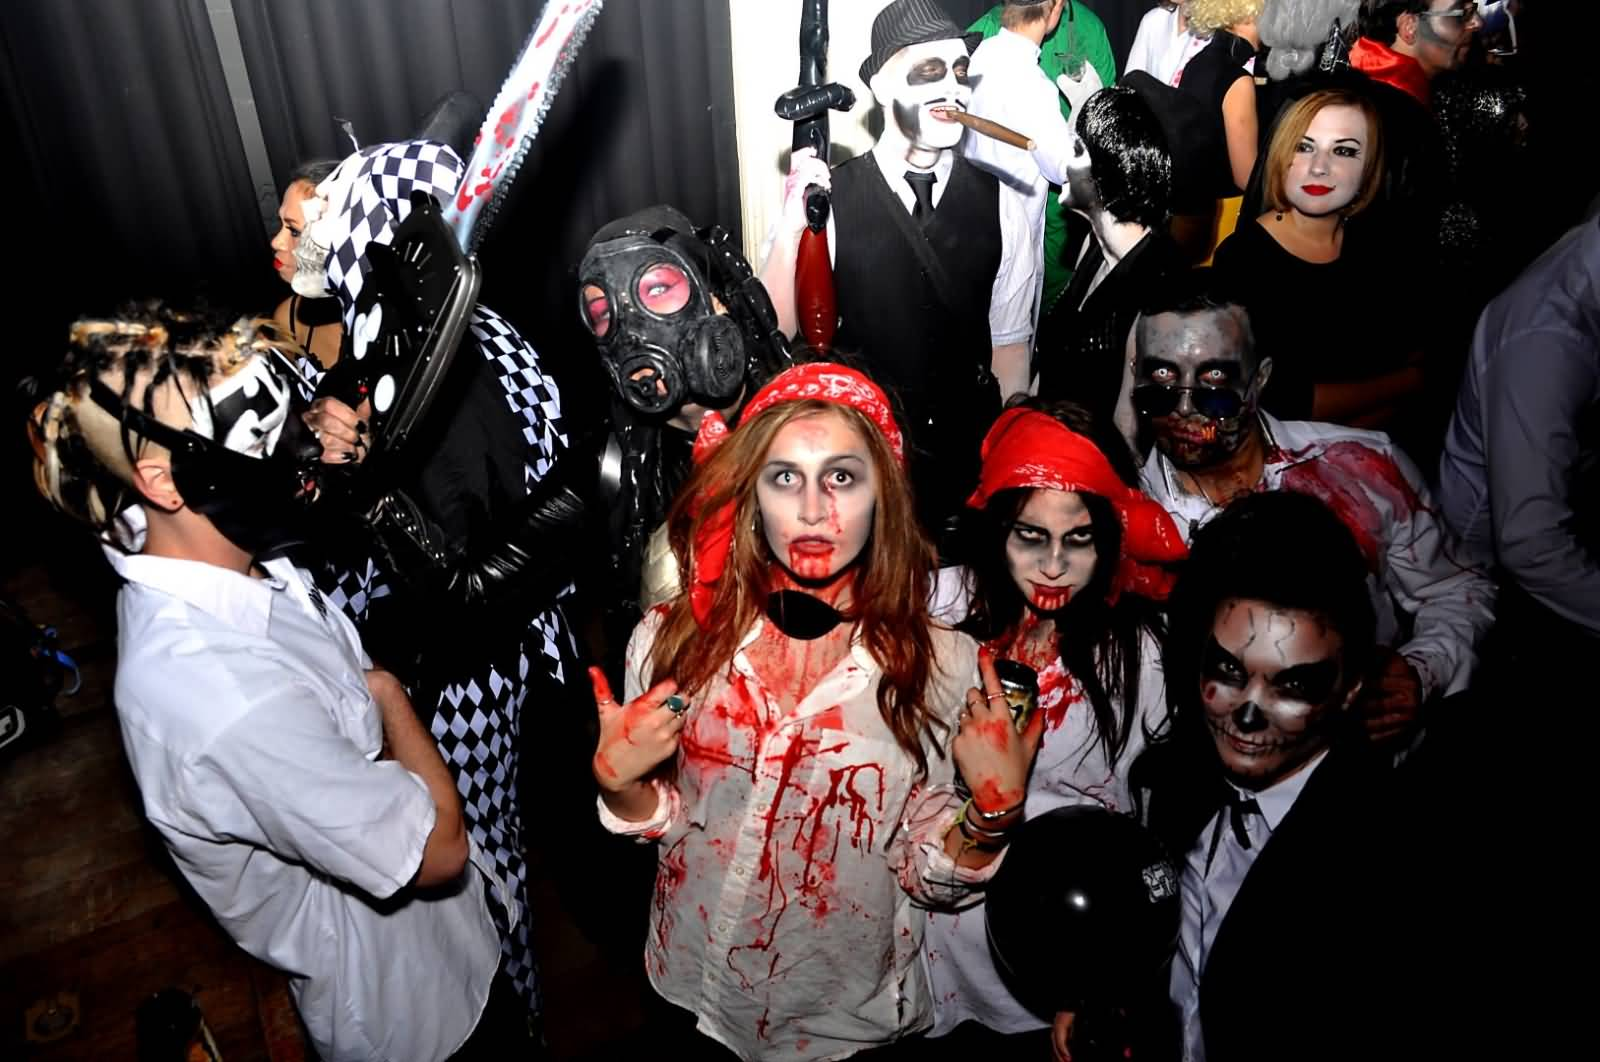 25+ Beautiful Halloween Party Images